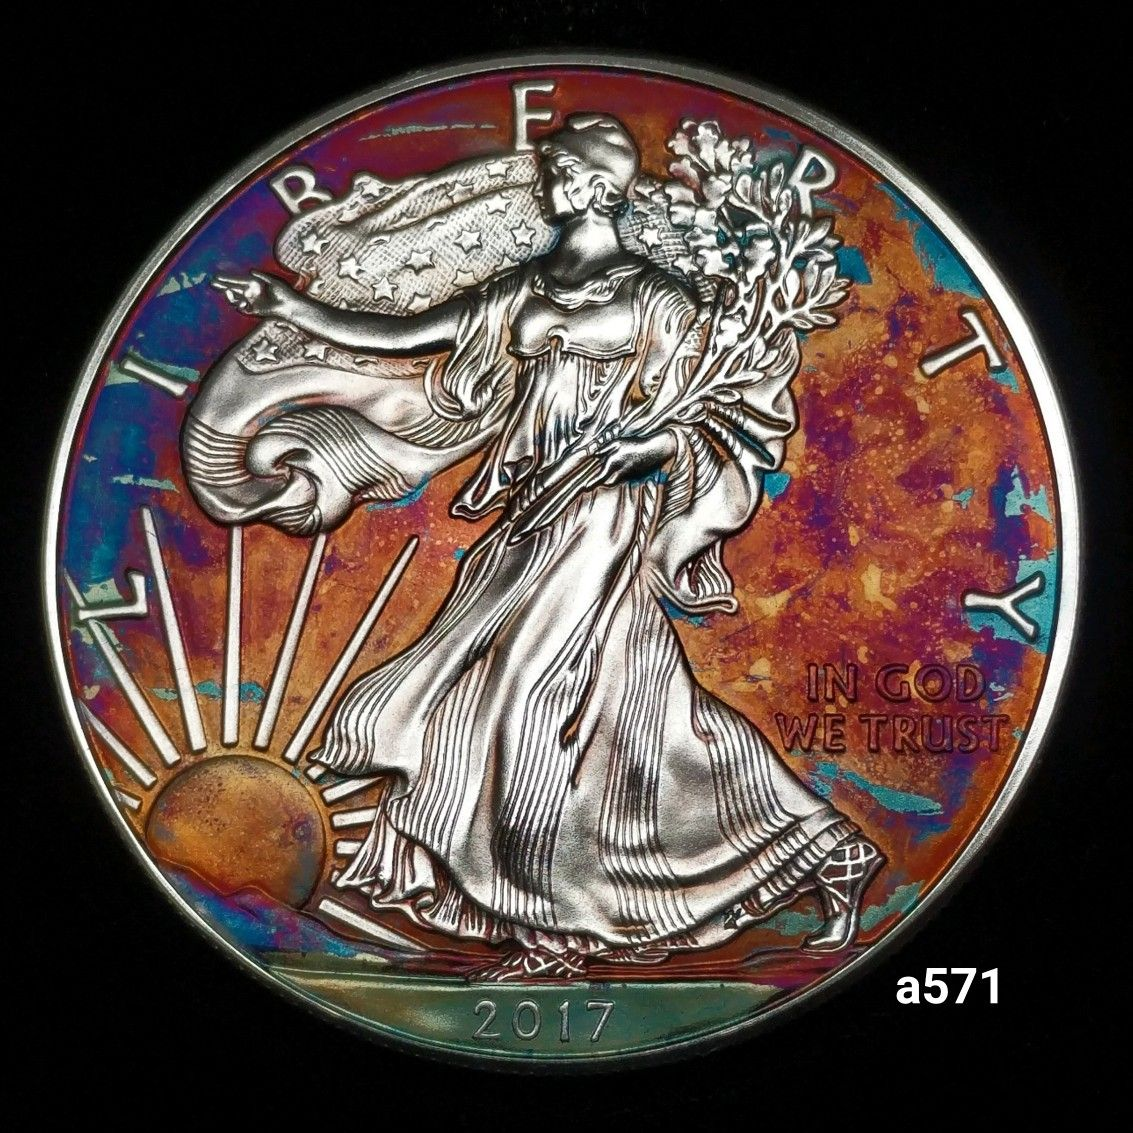 Rainbow Toned Silver American Eagle Coin 1 Troy Ounce Fine Silver Uncirculated High Grade Artistic Toning Eagle Coin Silver Eagle Coins American Silver Eagle